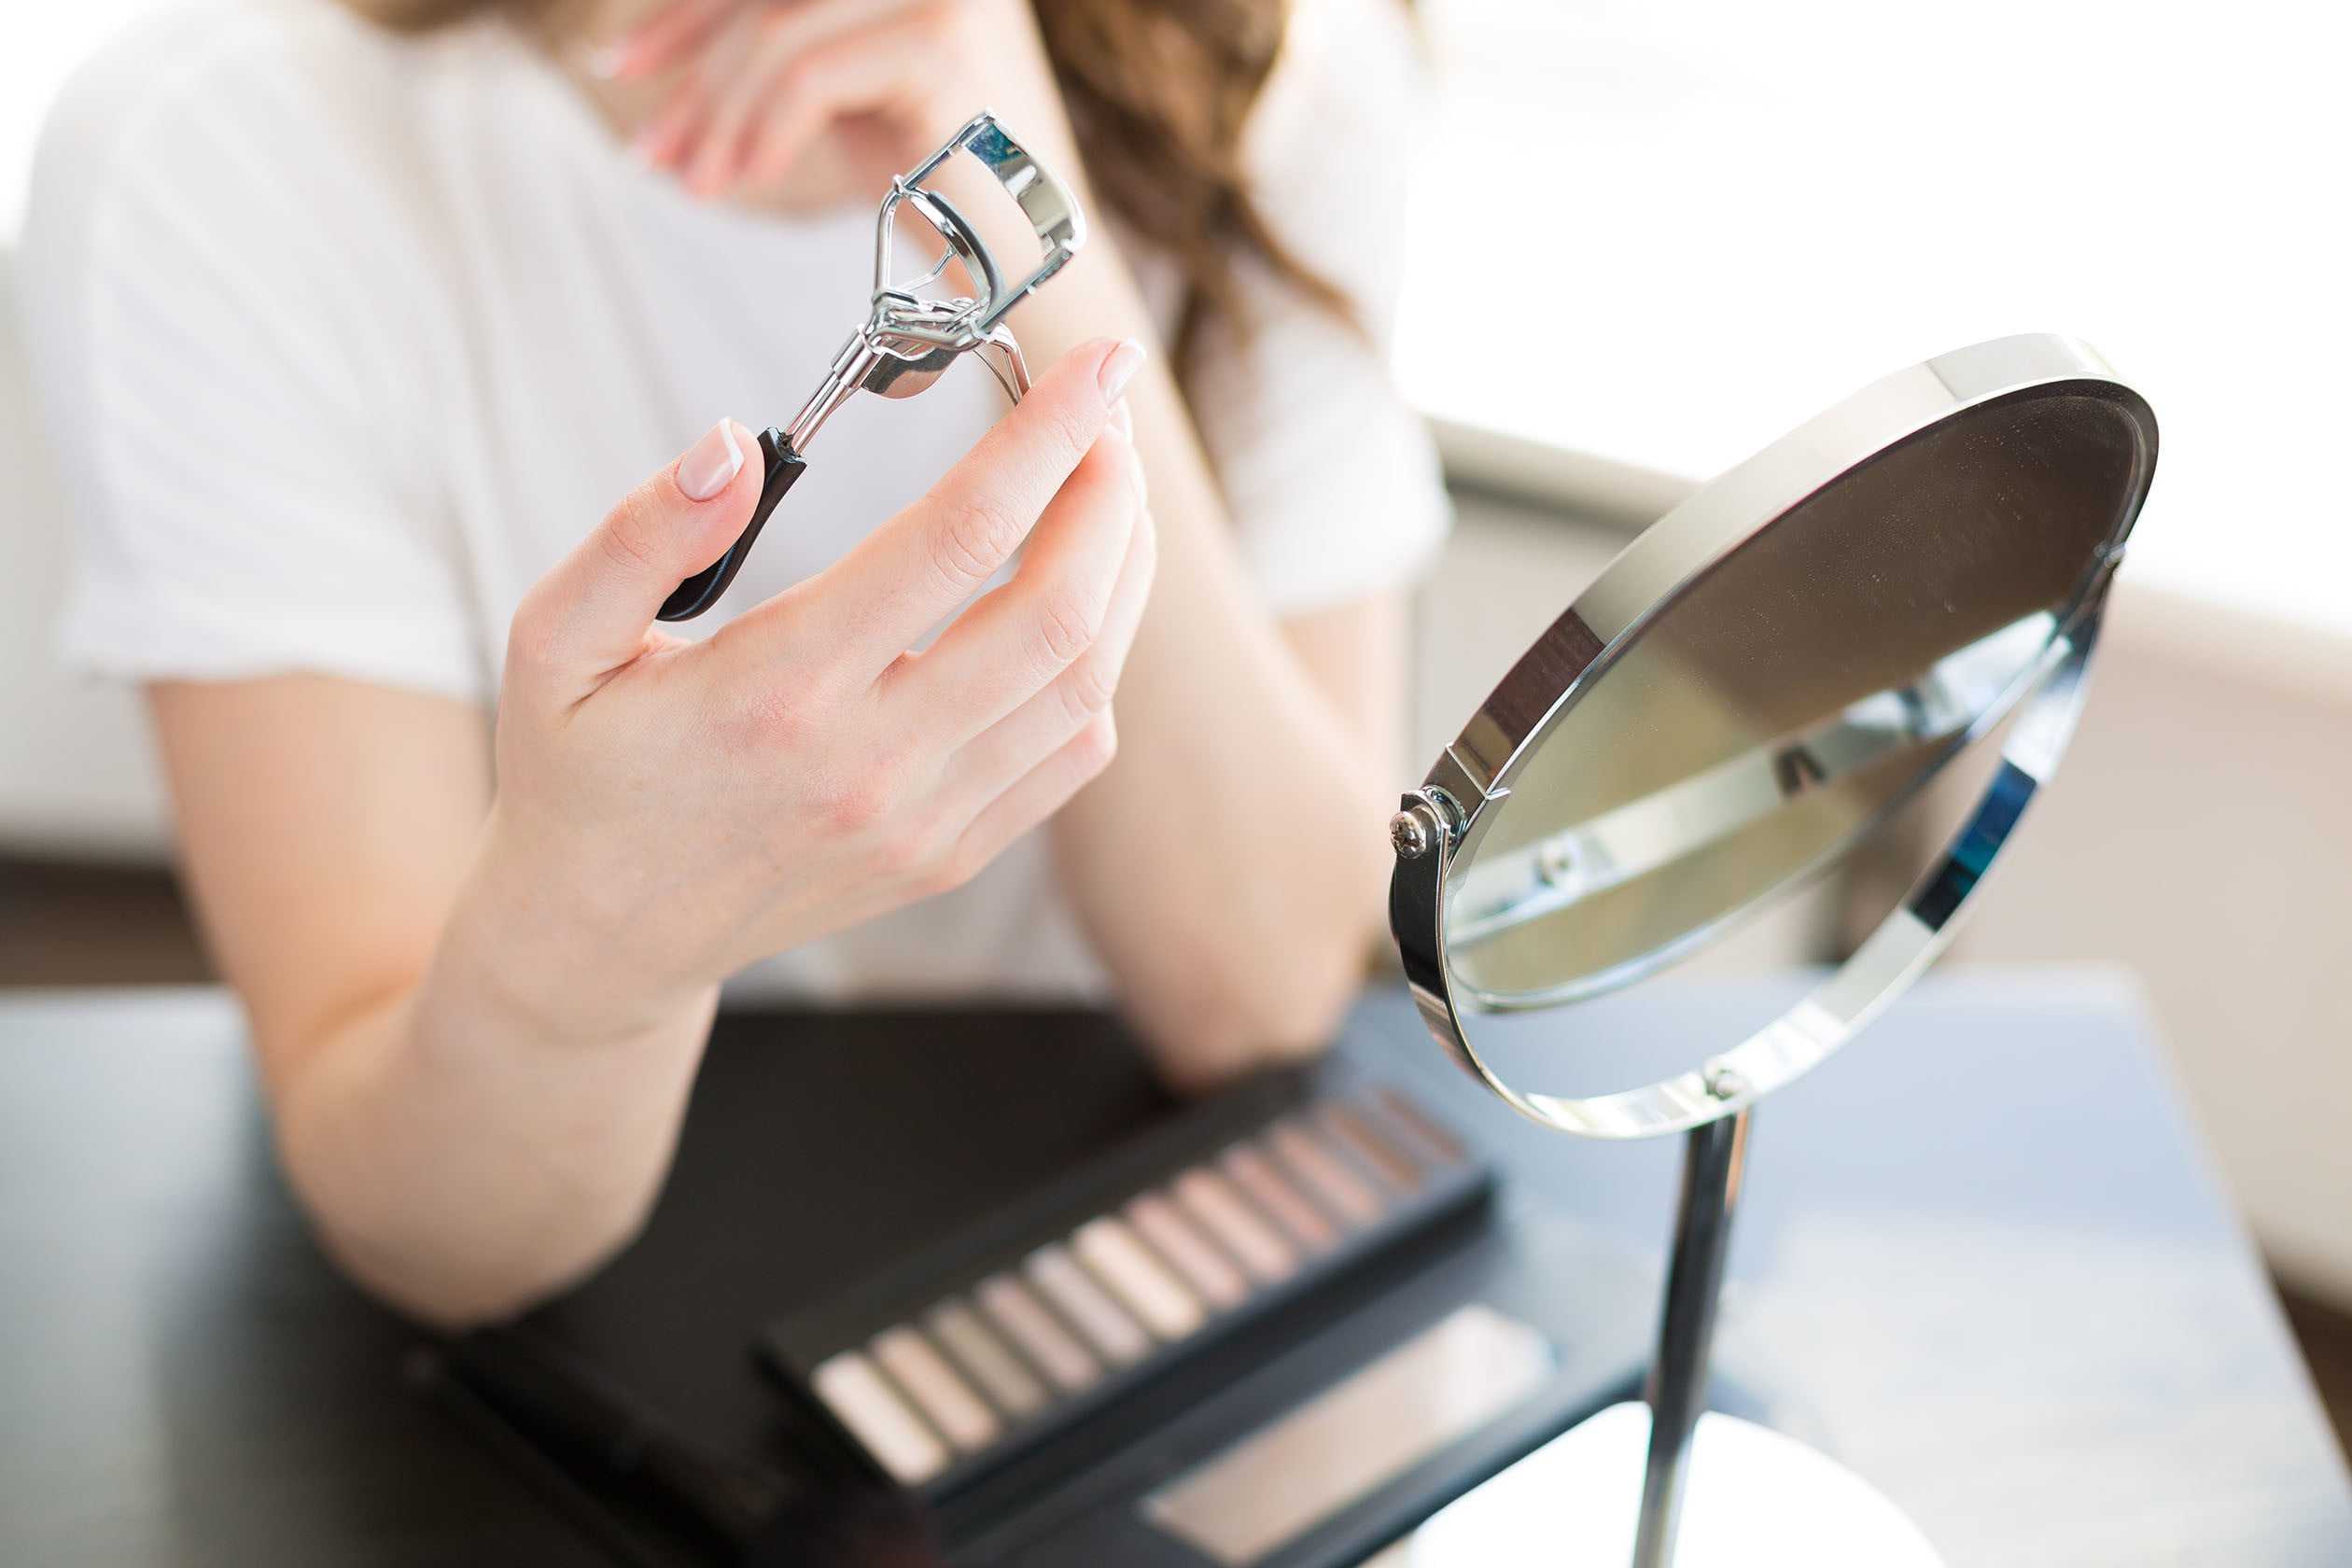 woman applying makeup and curling eyelashes in a mirror